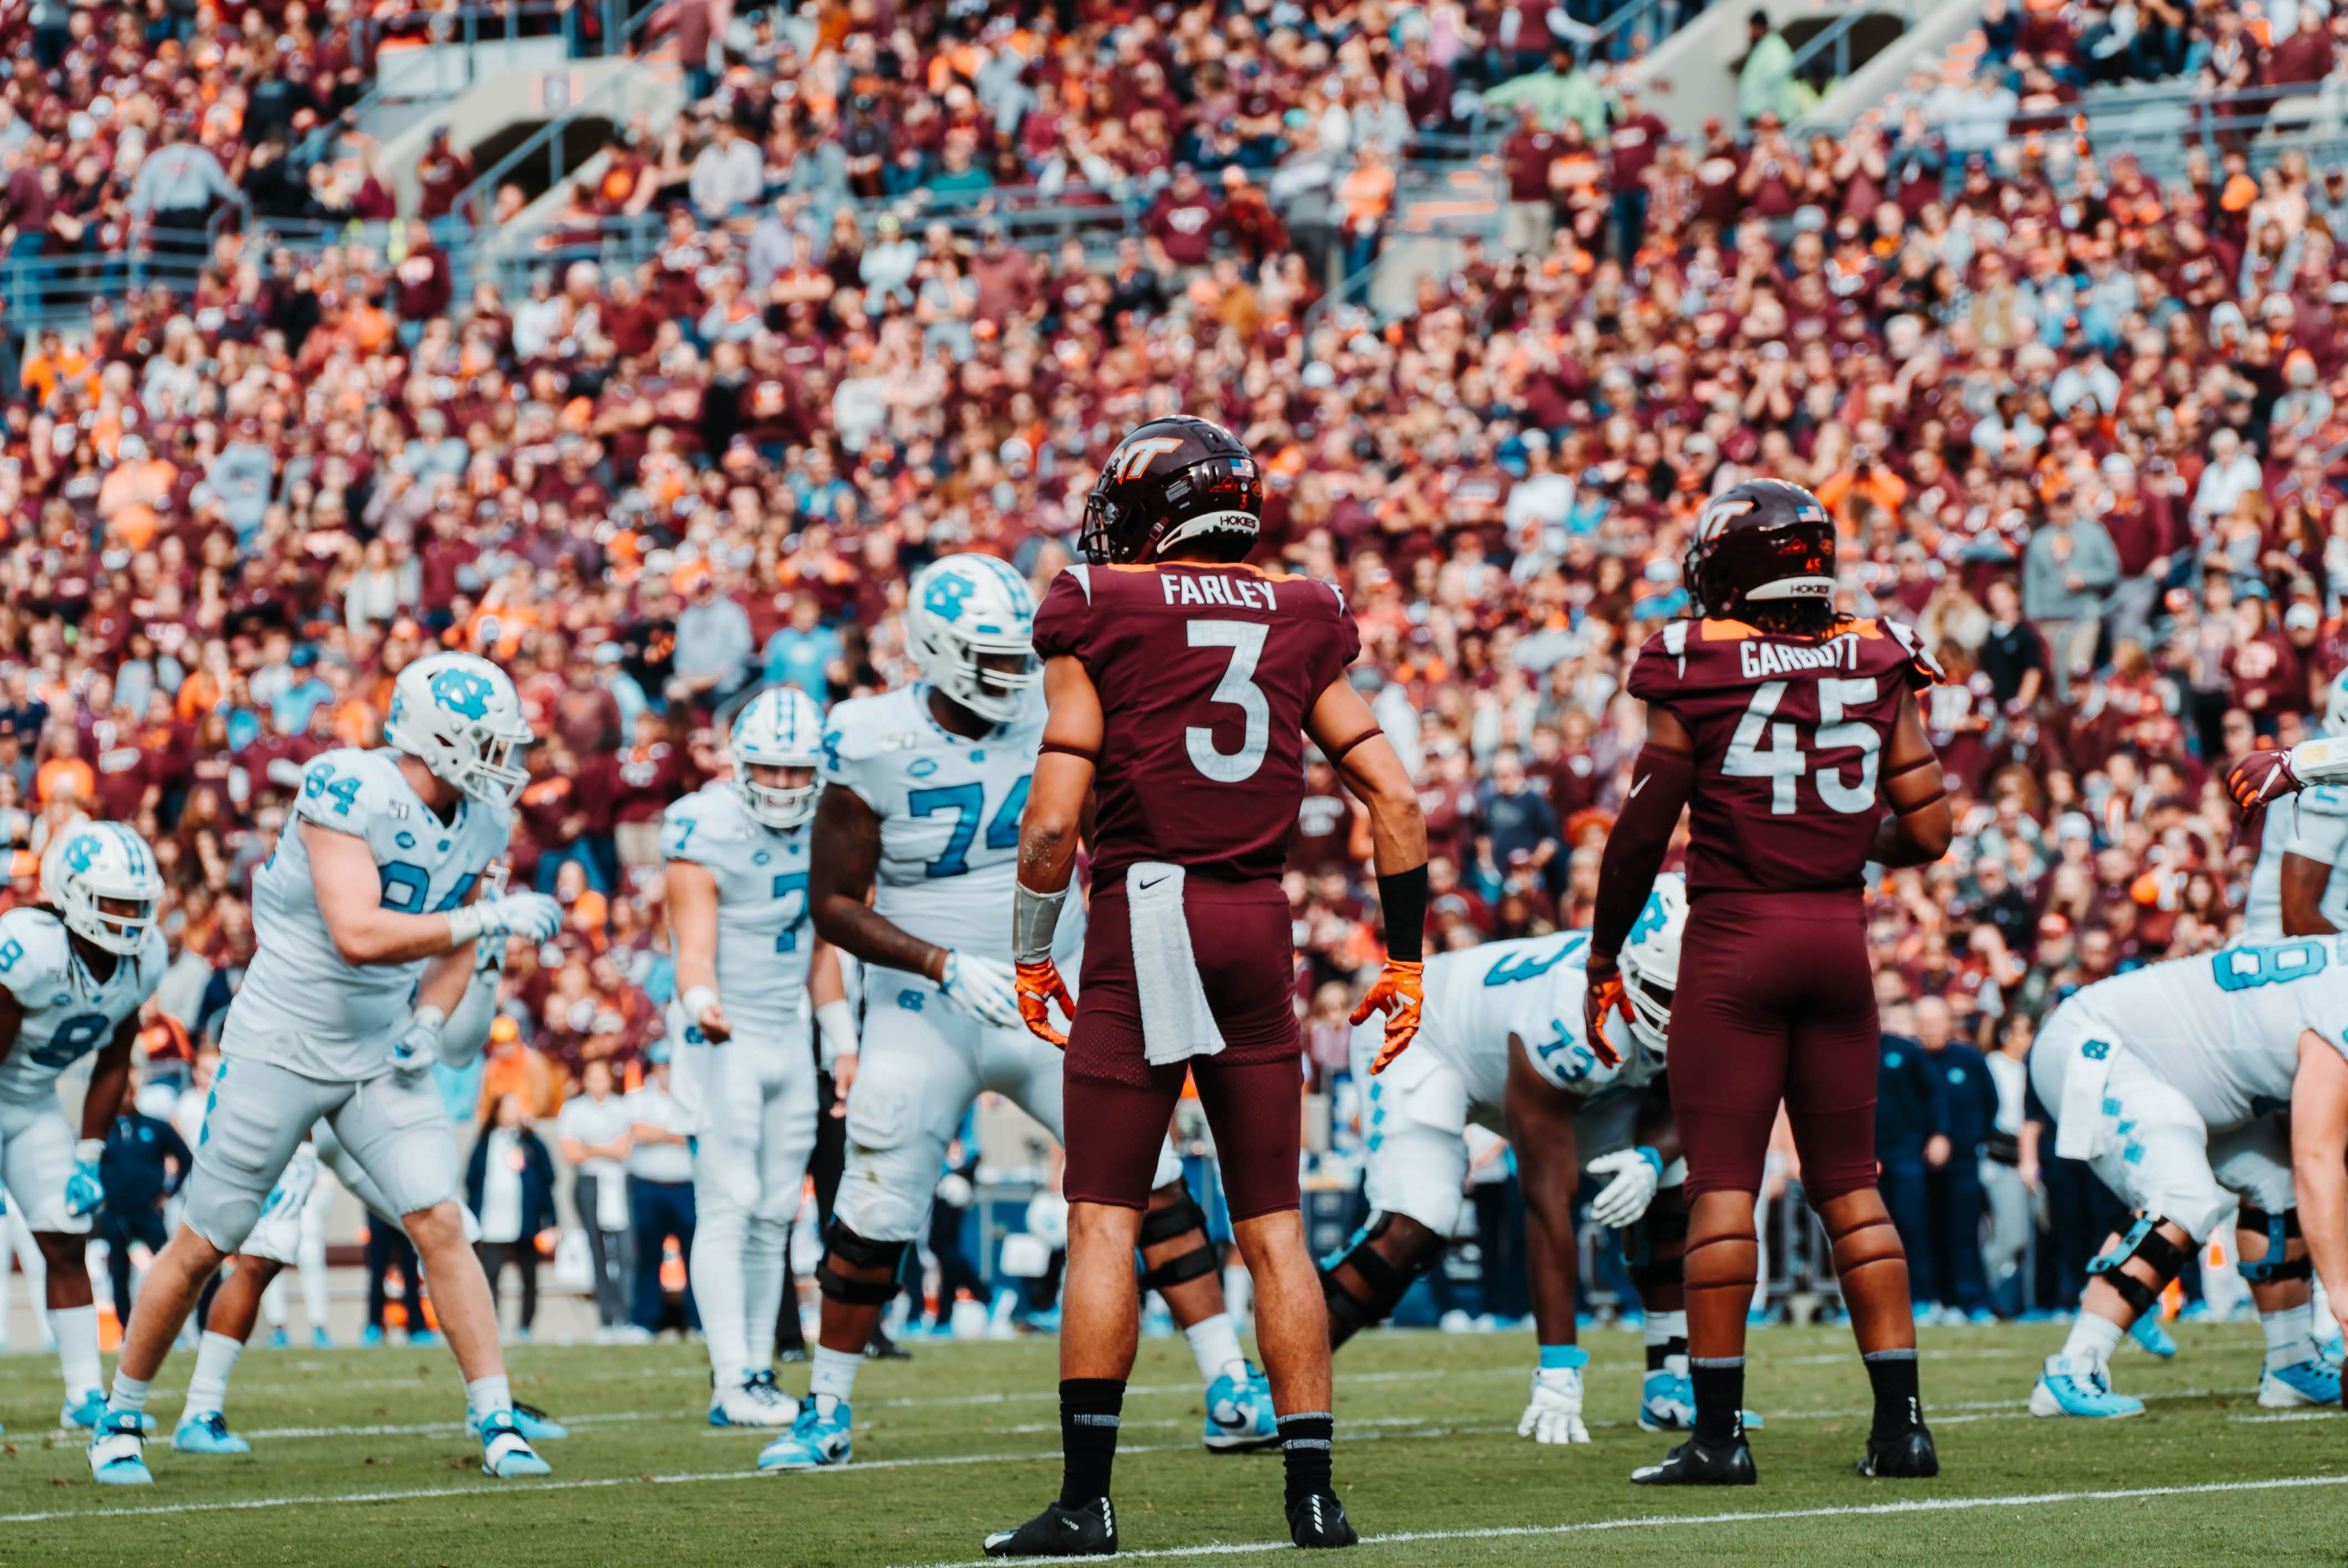 Virginia Tech CB Caleb Farley Selected 22nd Overall by Tennessee Titans in 2021 NFL Draft